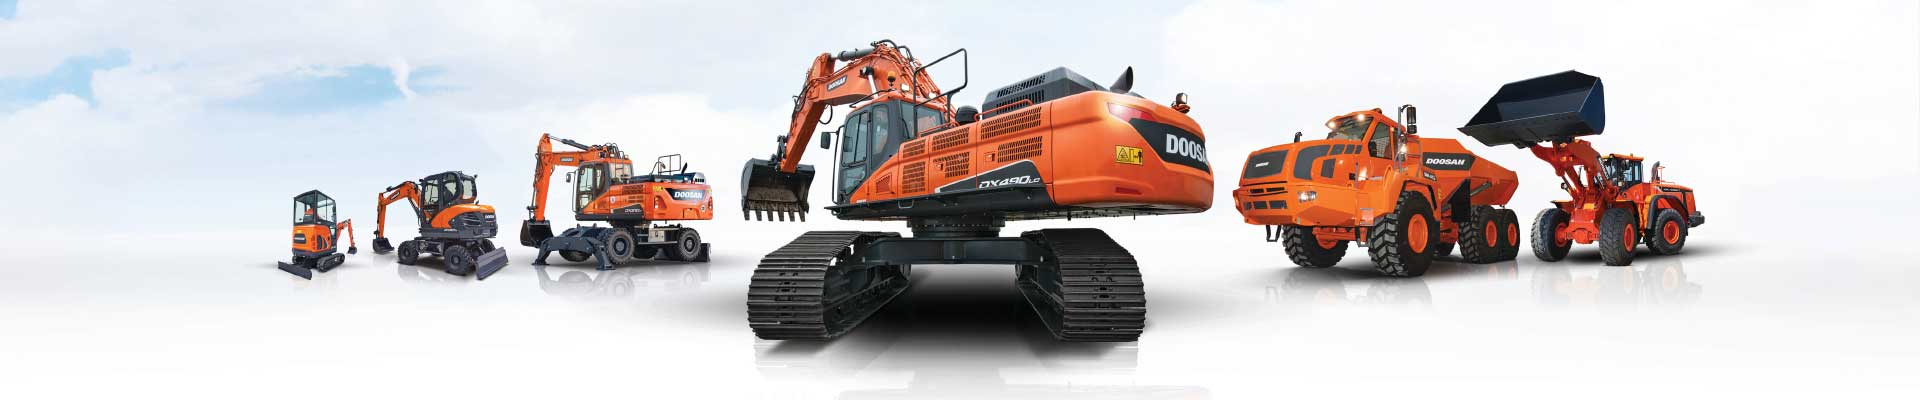 Machines TP Doosan